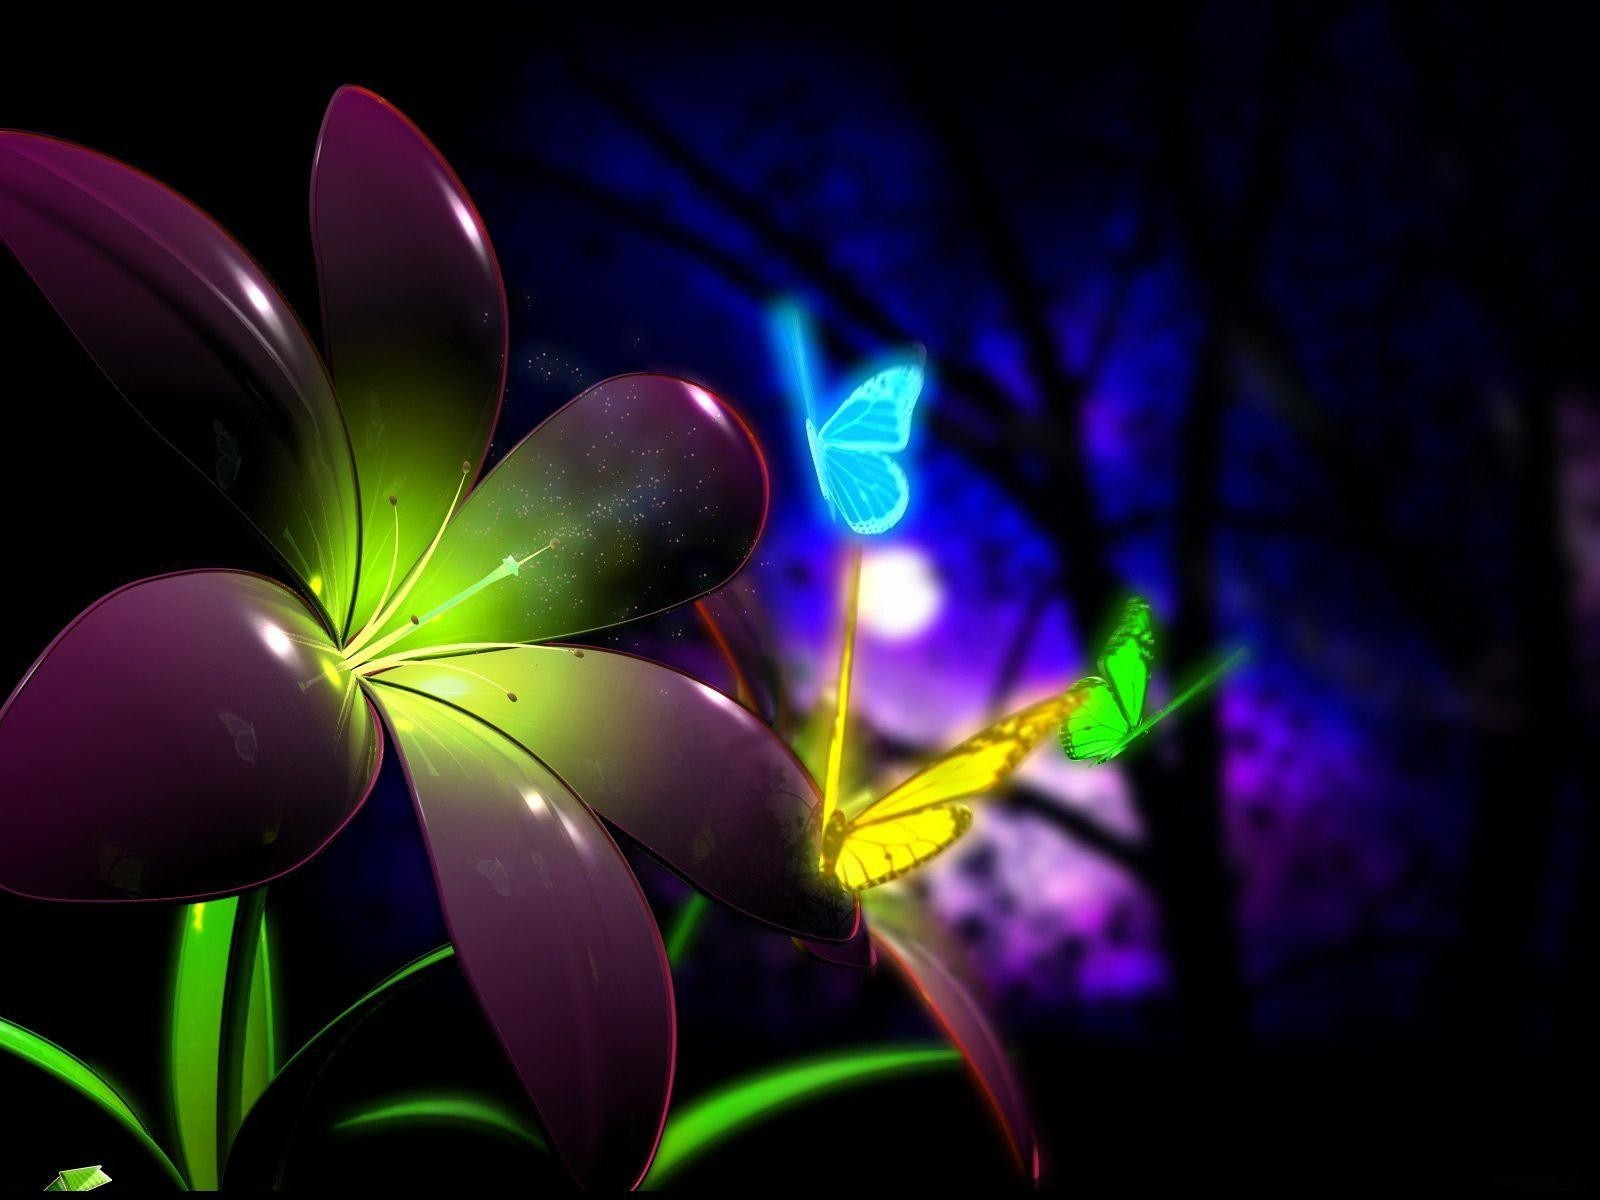 Hd wallpaper for android download Group 64+